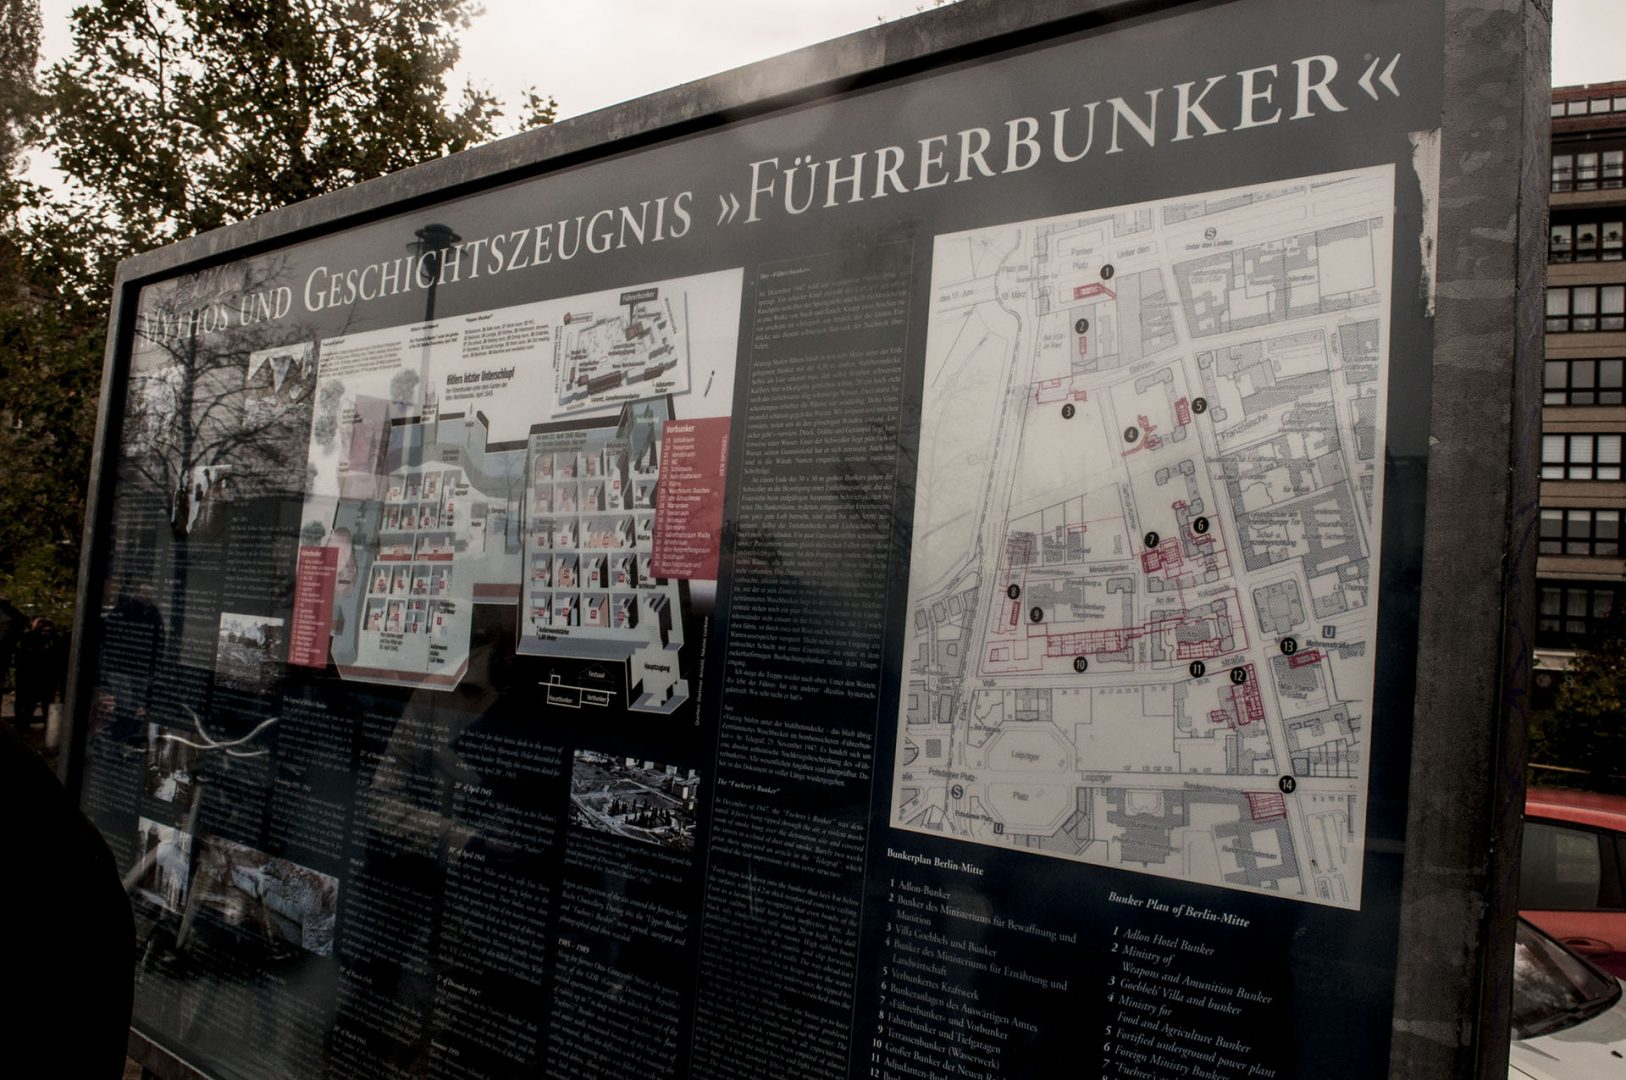 Site of Hitler's Bunker